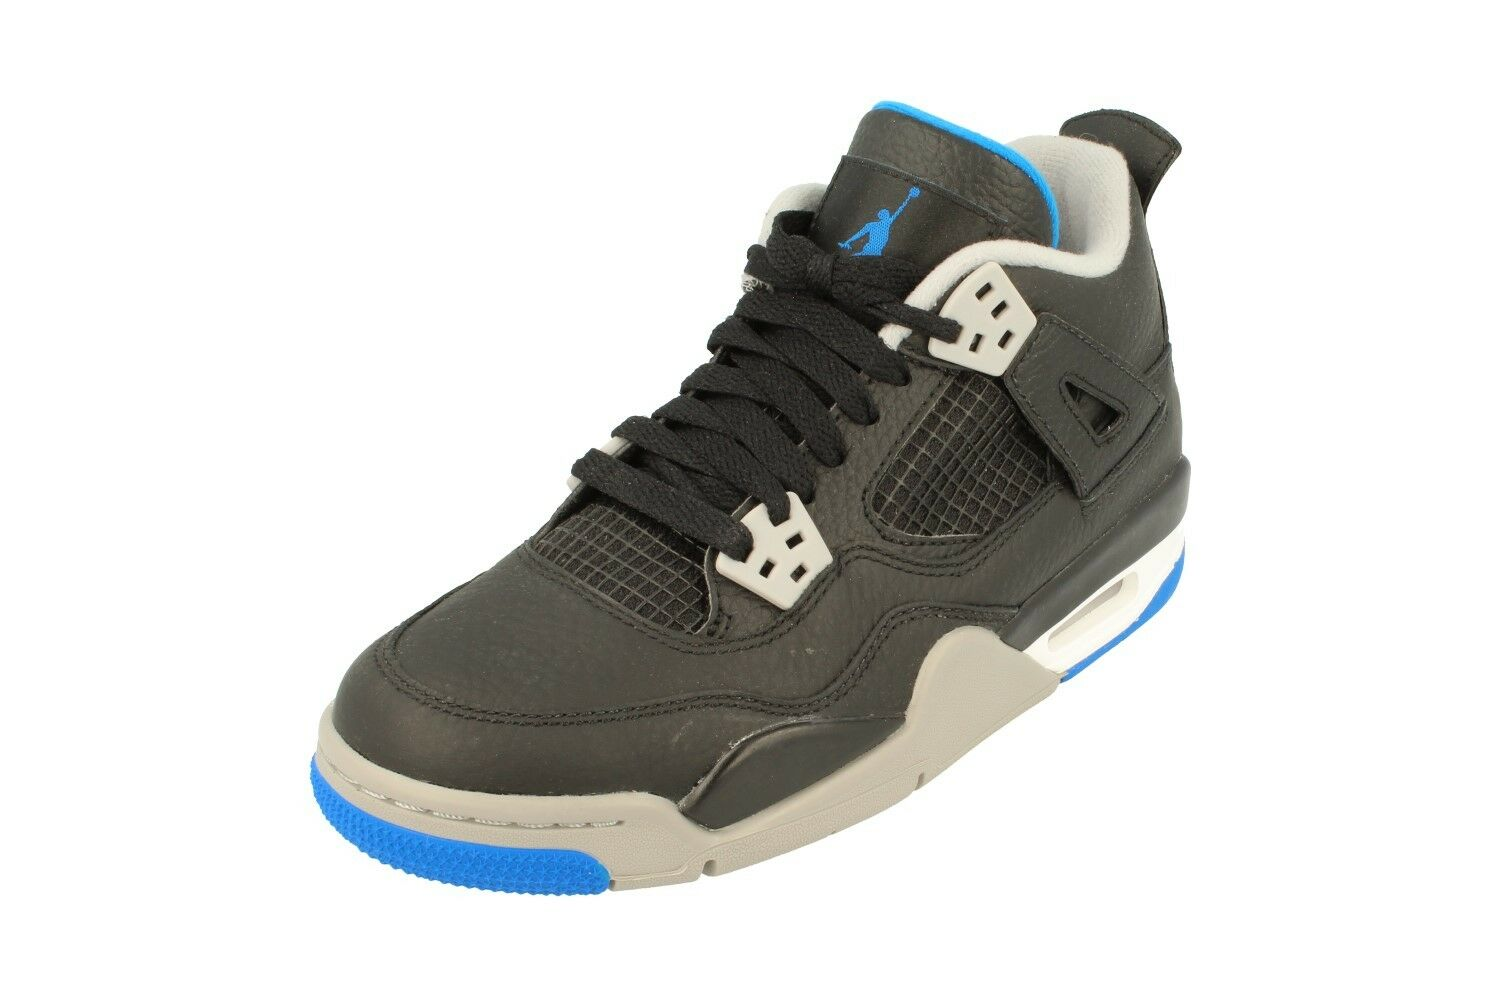 Nike Air Jordan 4 Retro BG Hi Top Trainers 408452 Sneakers Shoes 006 Great discount